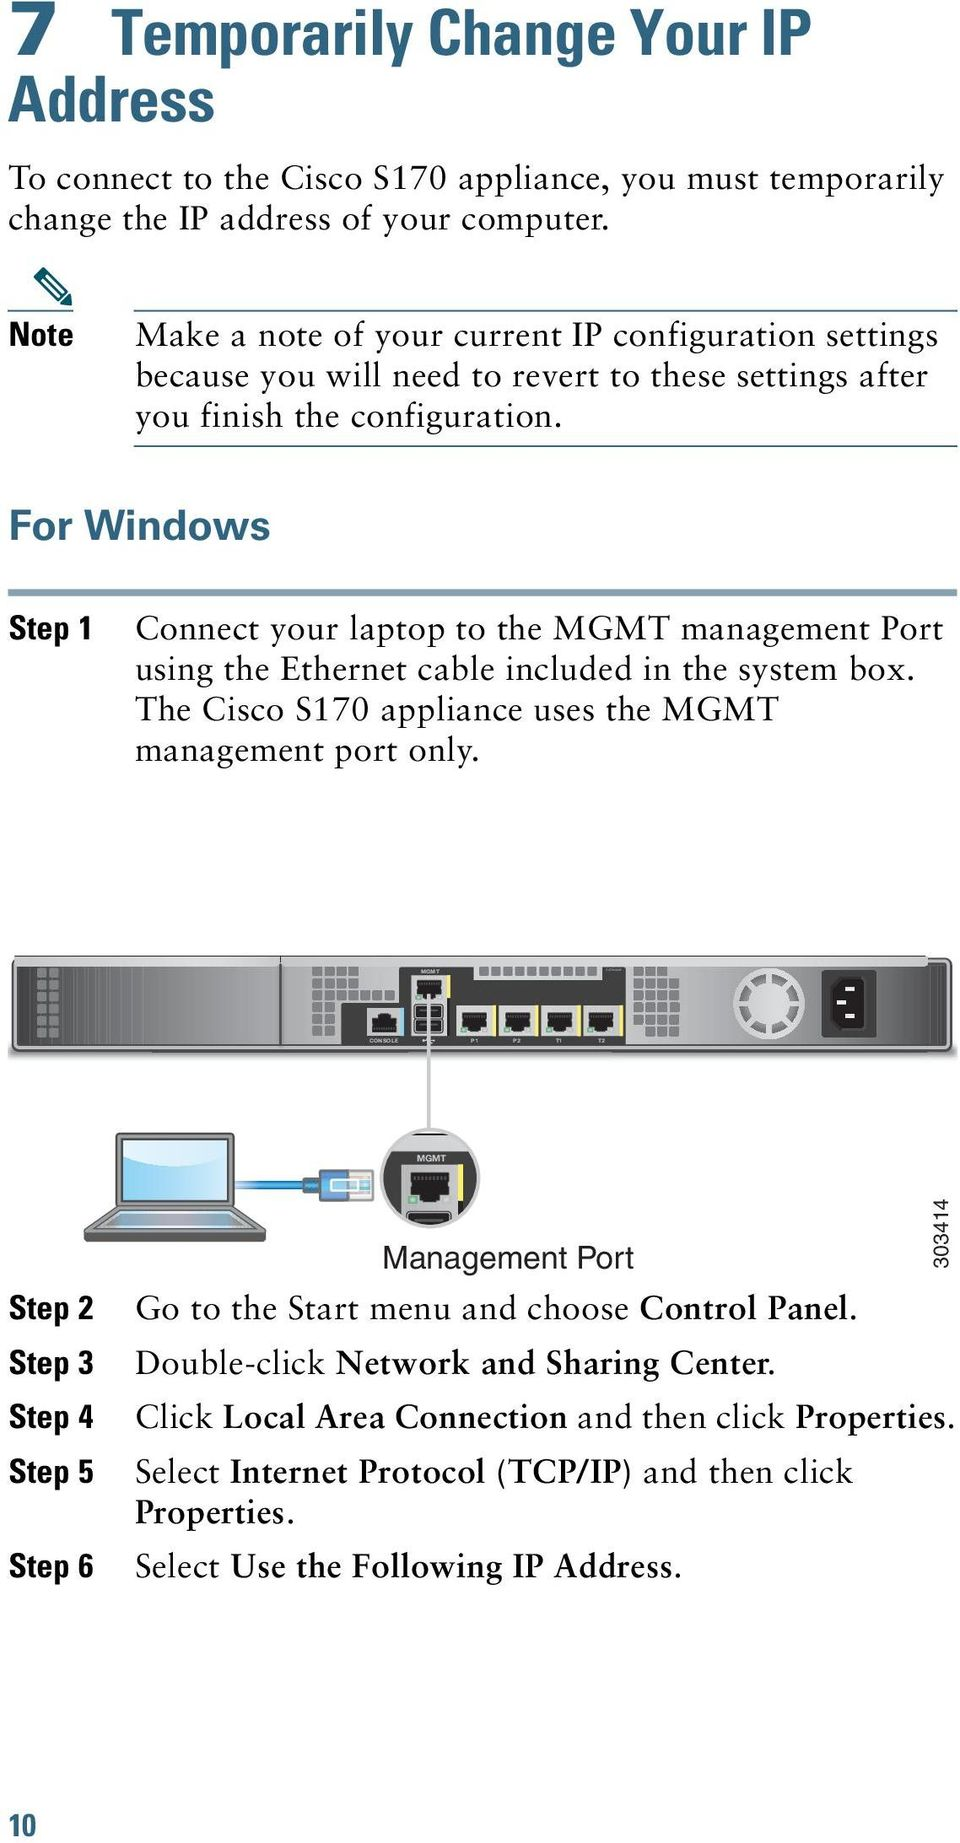 For Windows Step 1 Connect your laptop to the MGMT management Port using the Ethernet cable included in the system box. The Cisco S170 appliance uses the MGMT management port only.